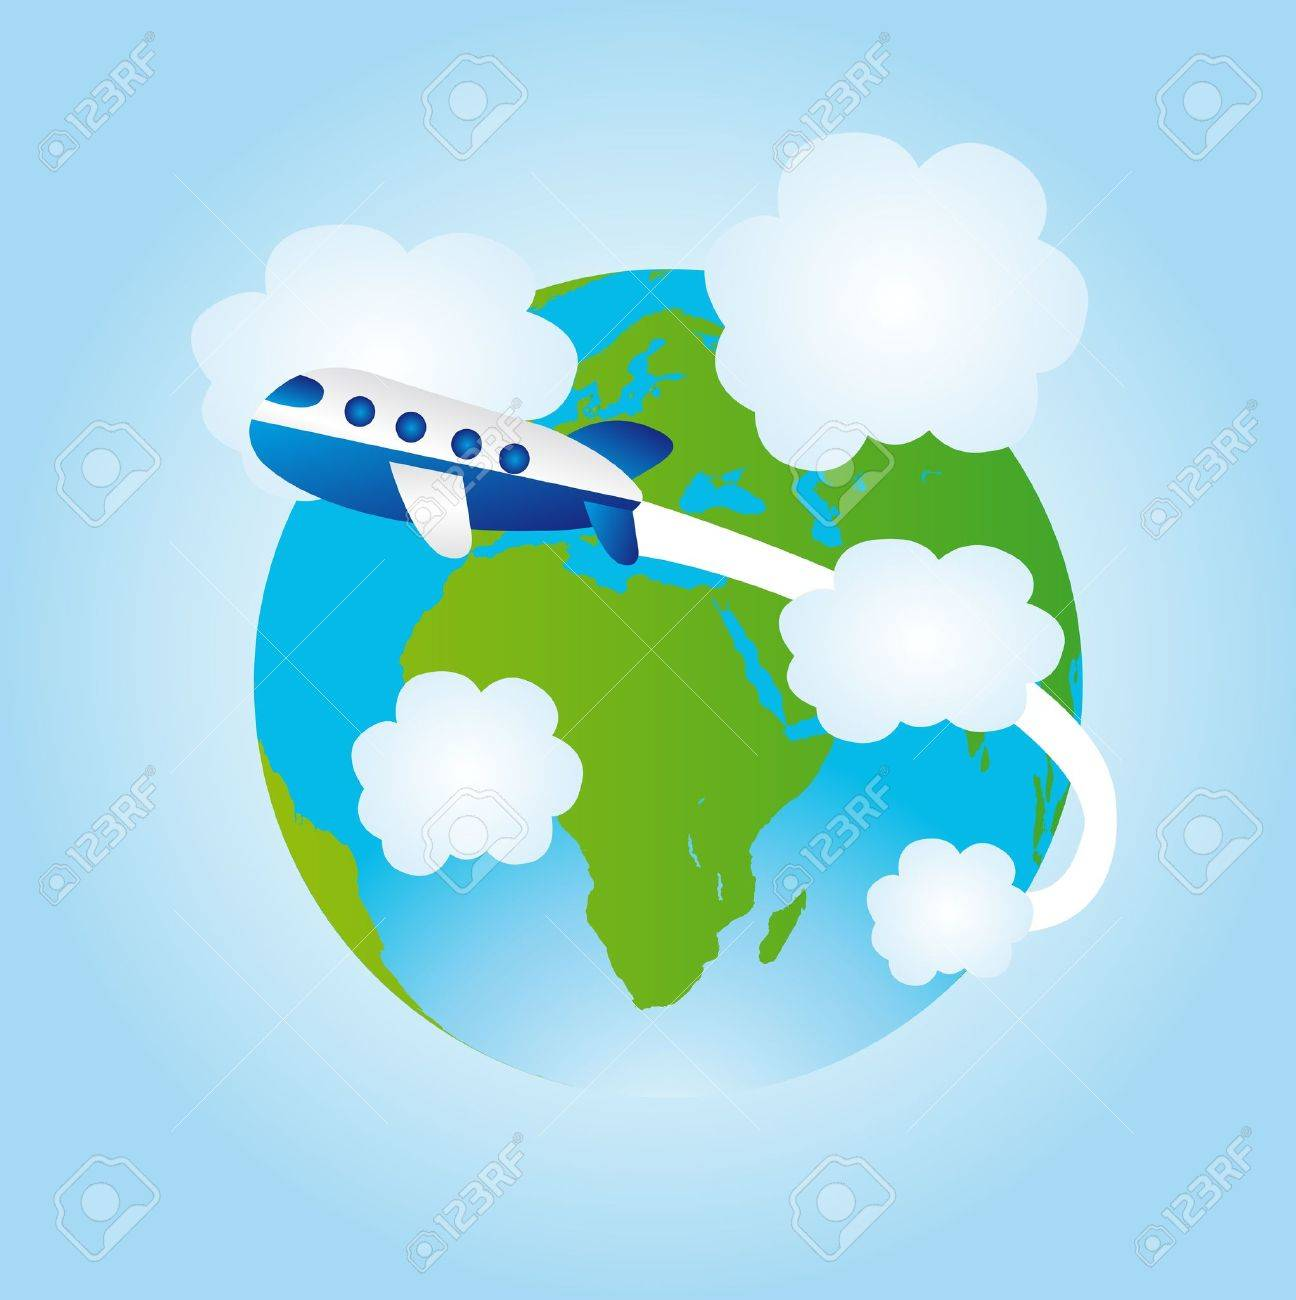 blue and green earth and blue airplane over blue background. Stock Vector - 10110145